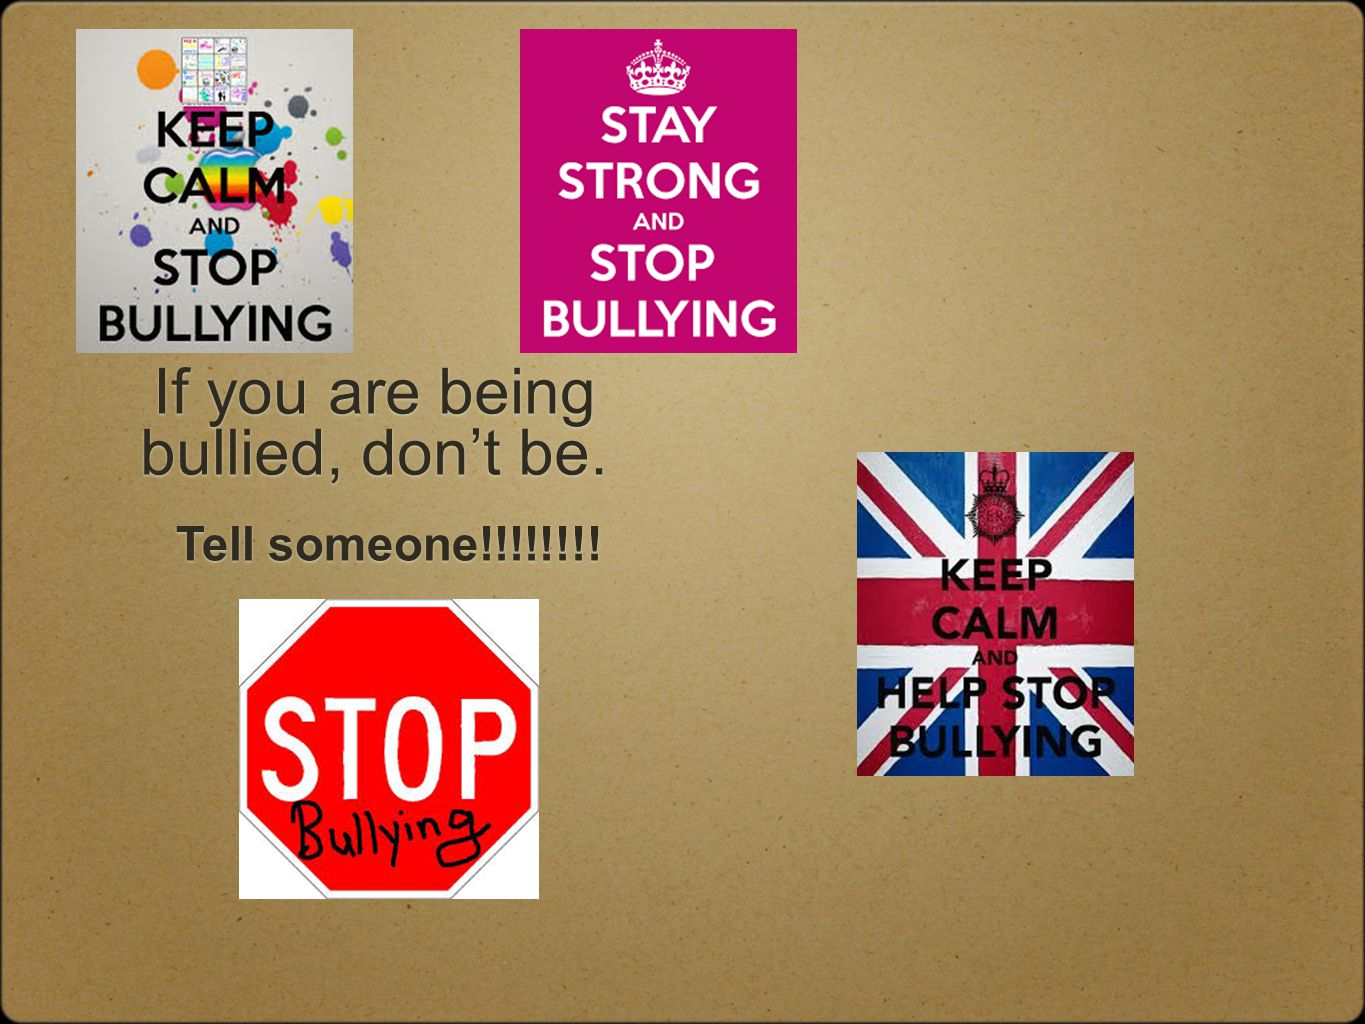 If you are being bullied, don't be.